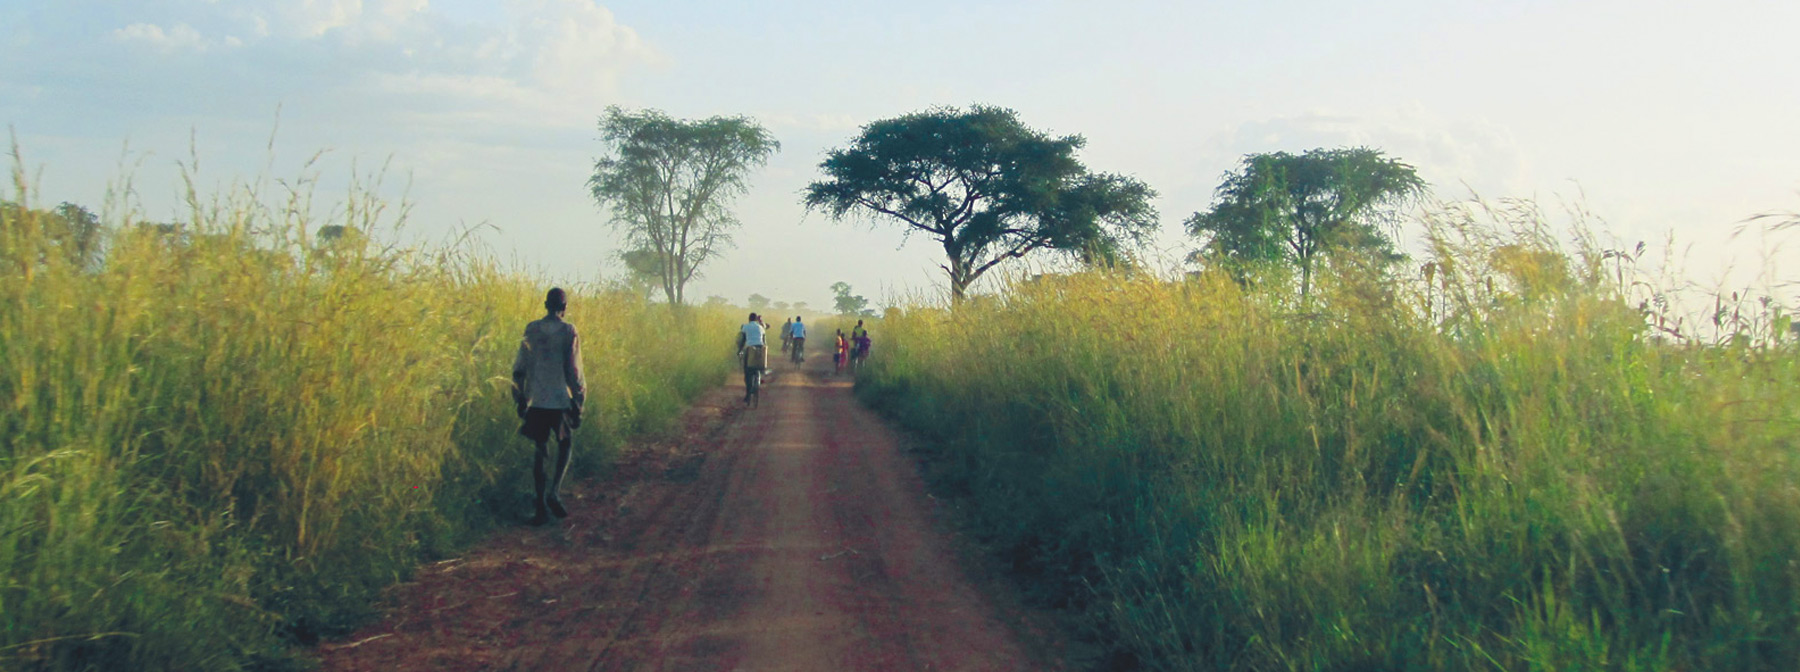 African villagers walking on a dirt road surrounded by tall green grass